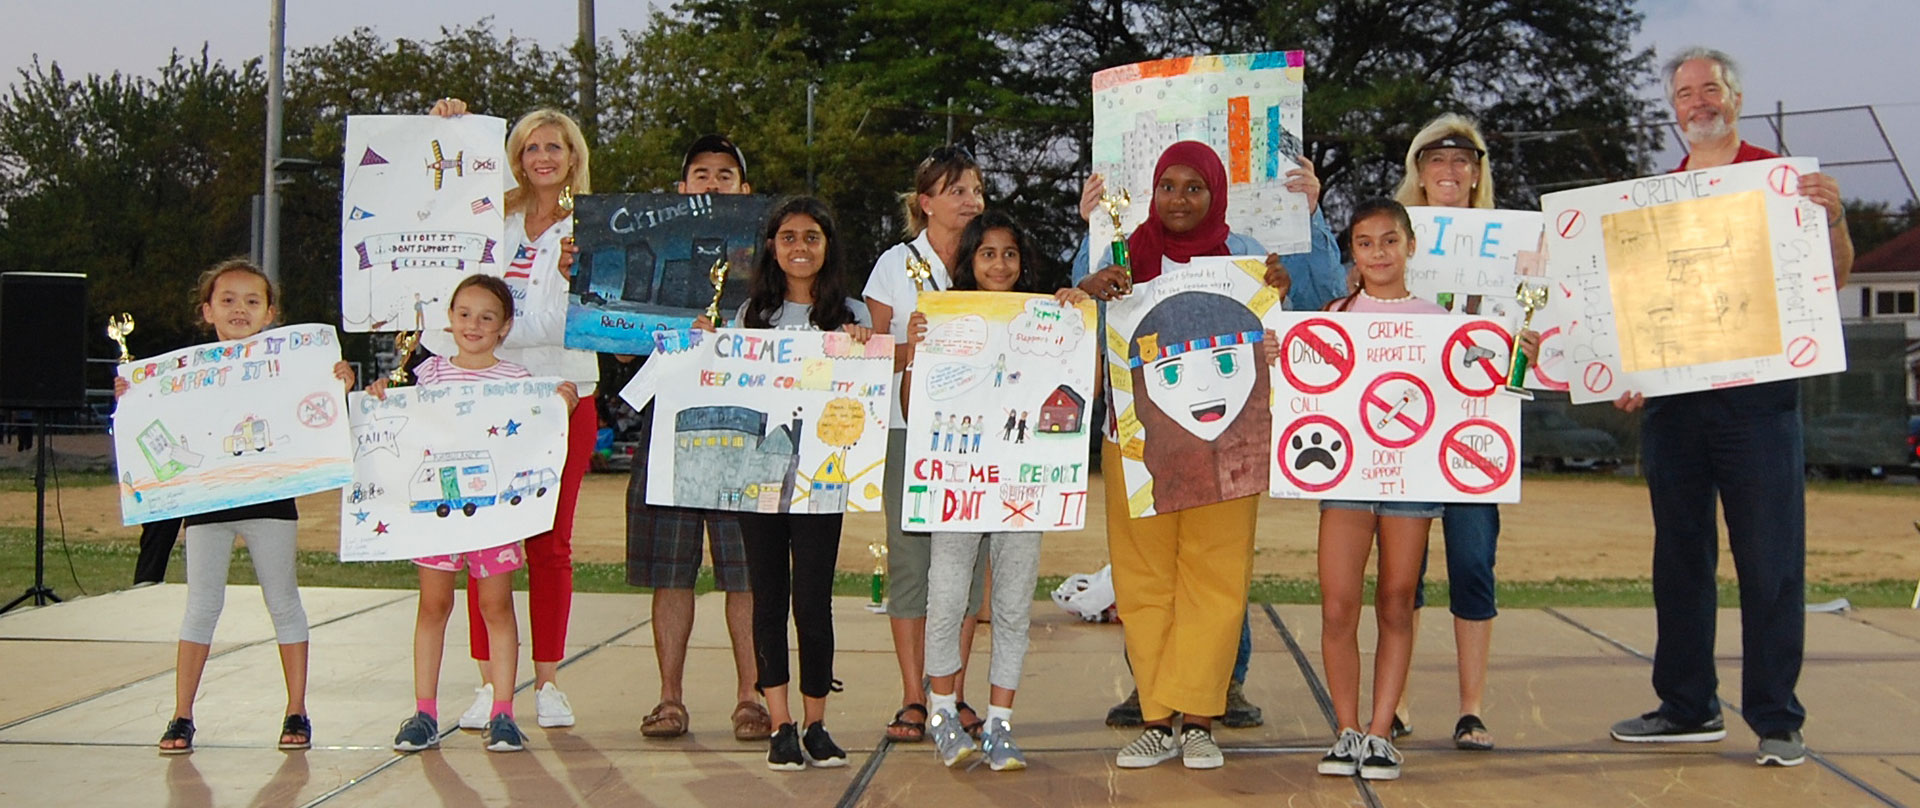 National Night Out Poster Contest Winners